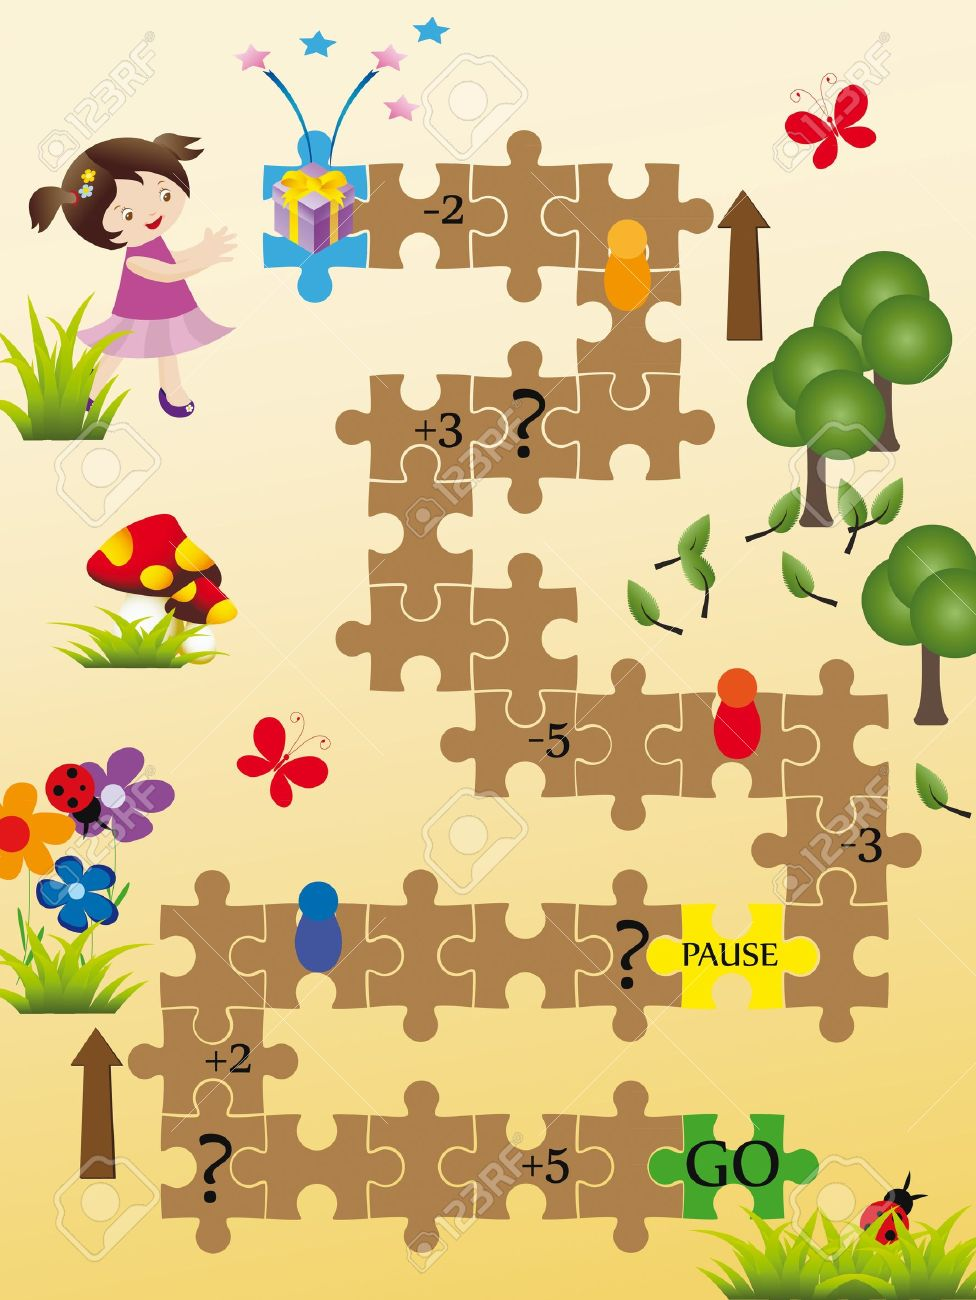 nice board game for kids royalty free cliparts vectors and stock